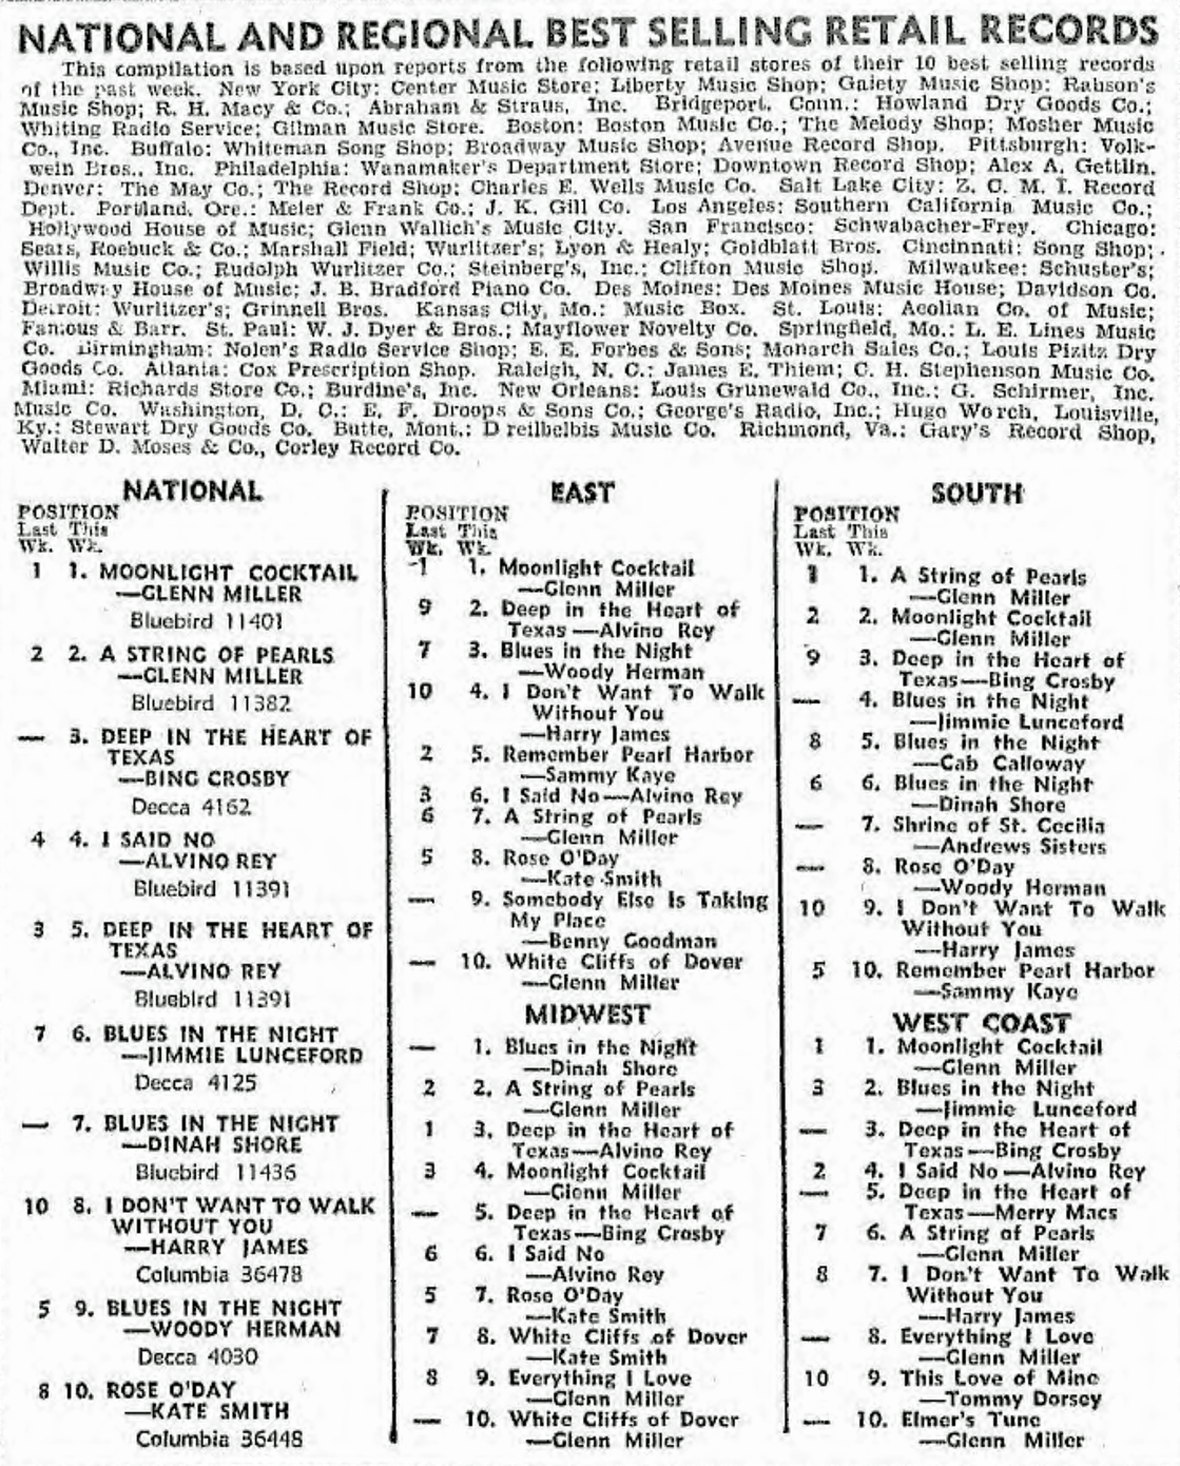 THE BILLBOARD NATIONAL and REGIONAL CHART February 27, 1942 (click on chart 2x for largest detailed view)